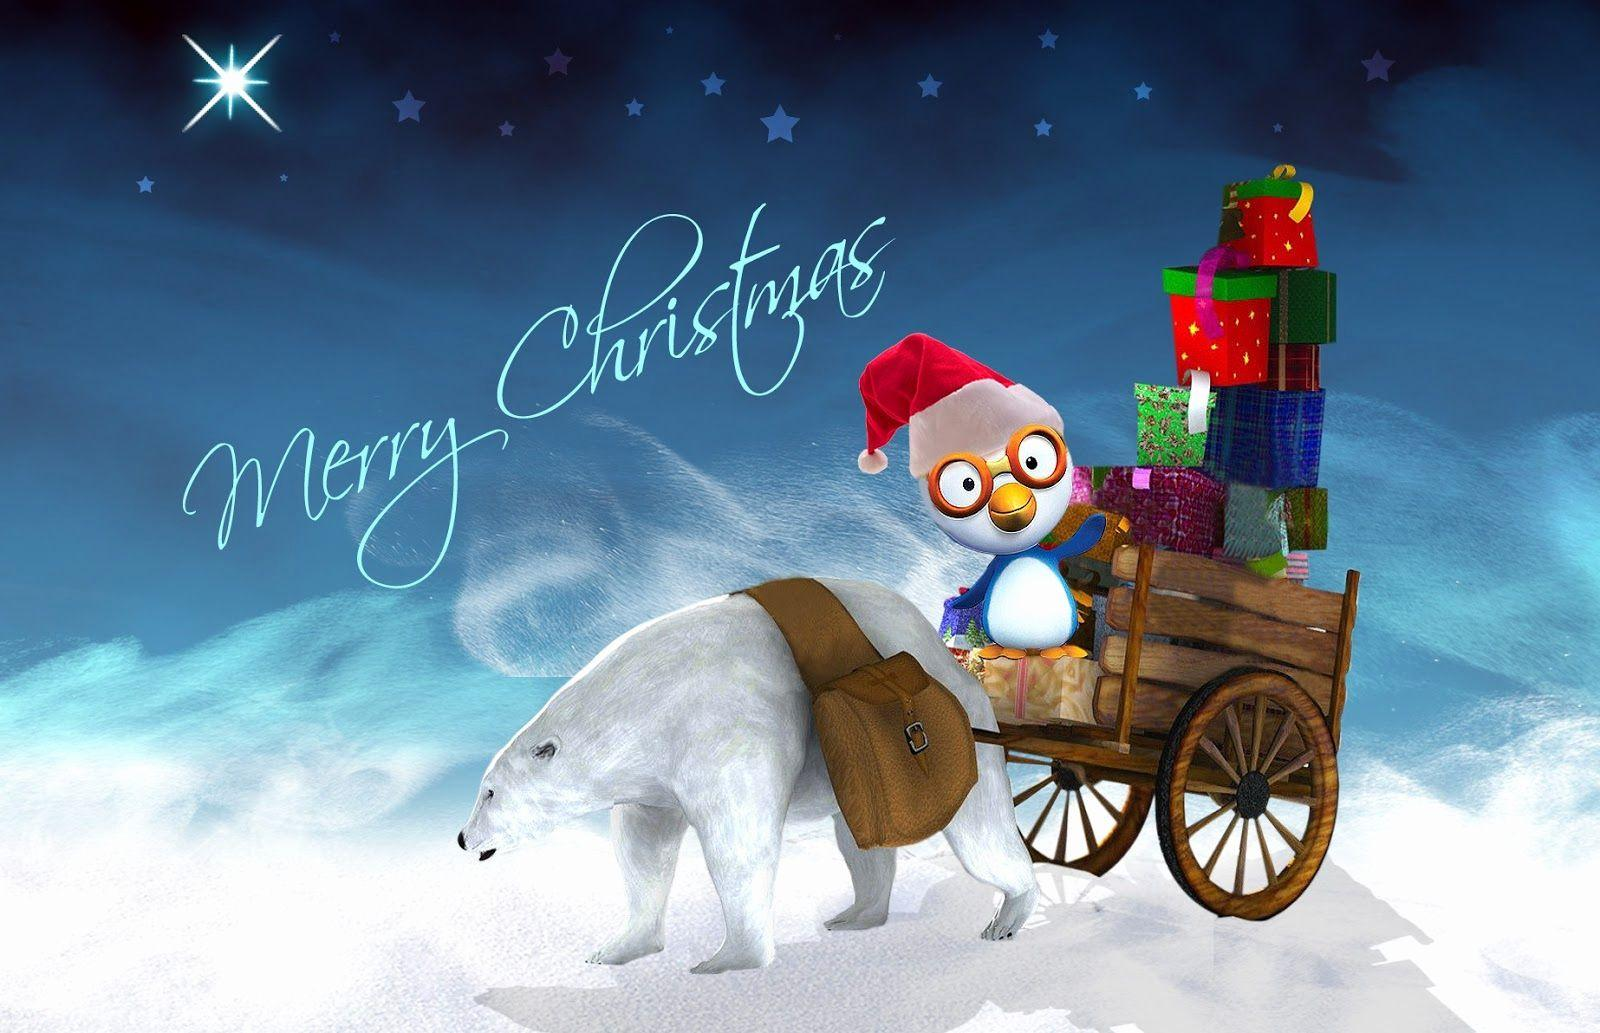 When is Christmas Day Merry Christmas Greetings Hd Wallpaper ...